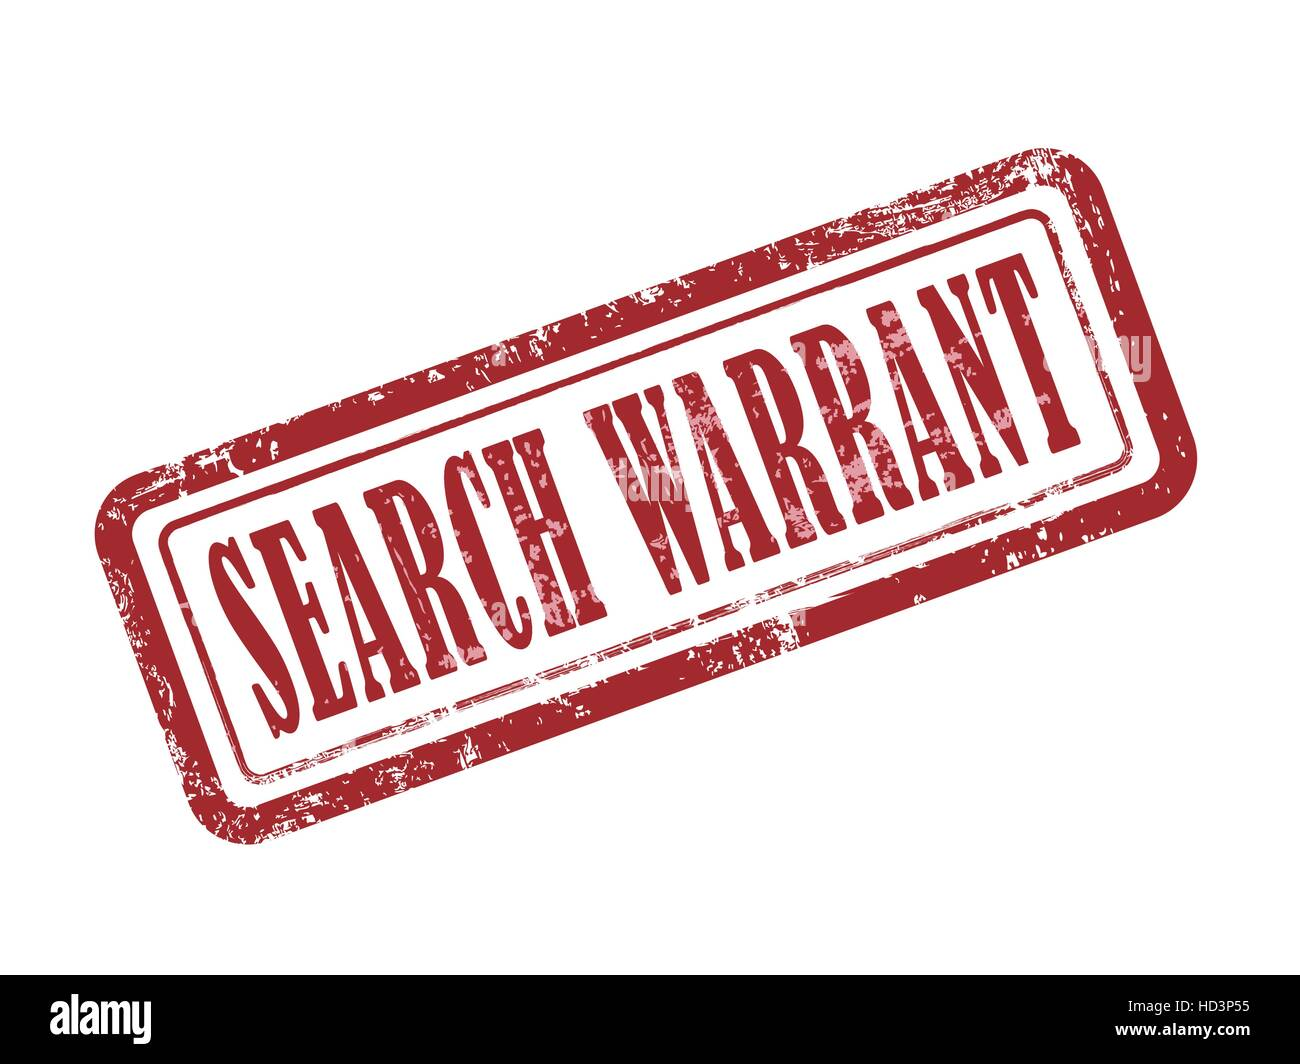 stamp search warrant in red over white background - Stock Image